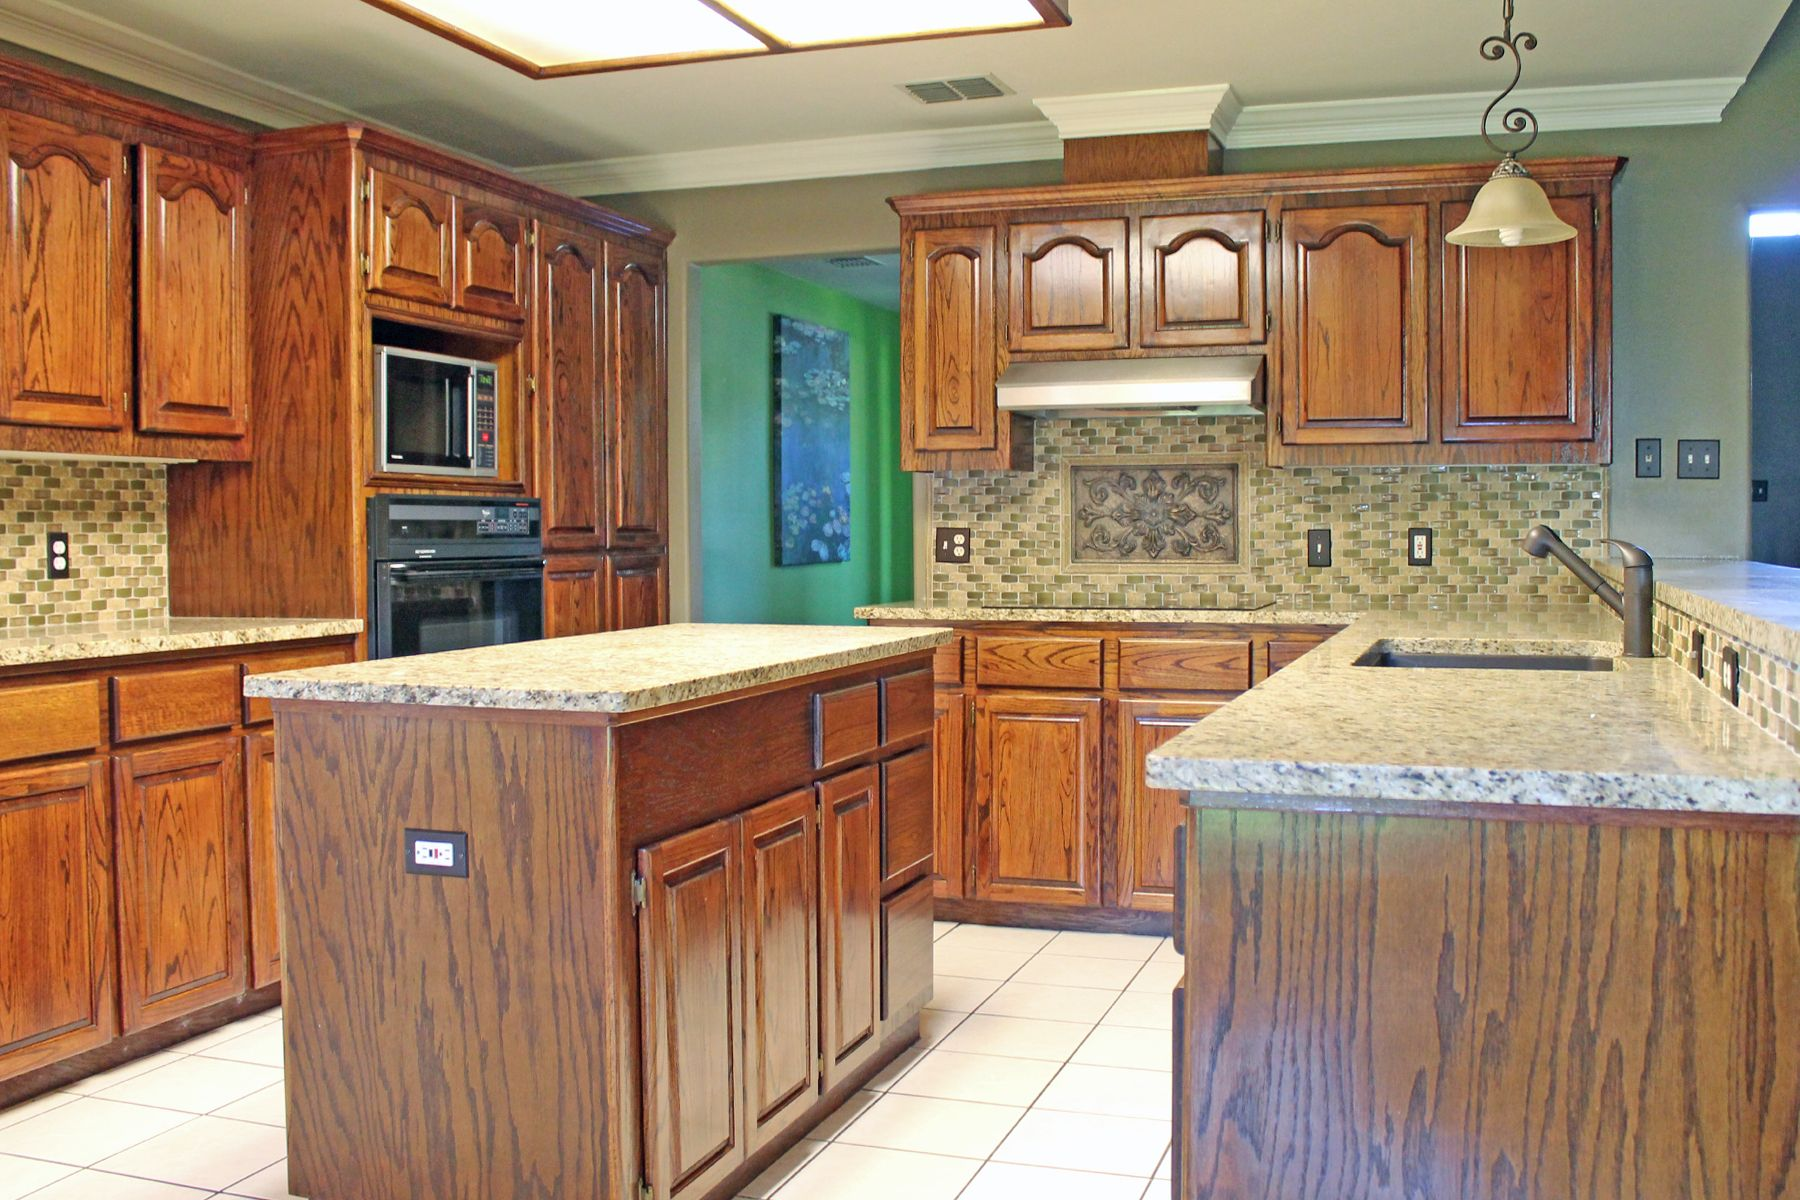 #Kitchen Design With Light Granite Countertops And Mosaic Tile Backsplash.  #ideas